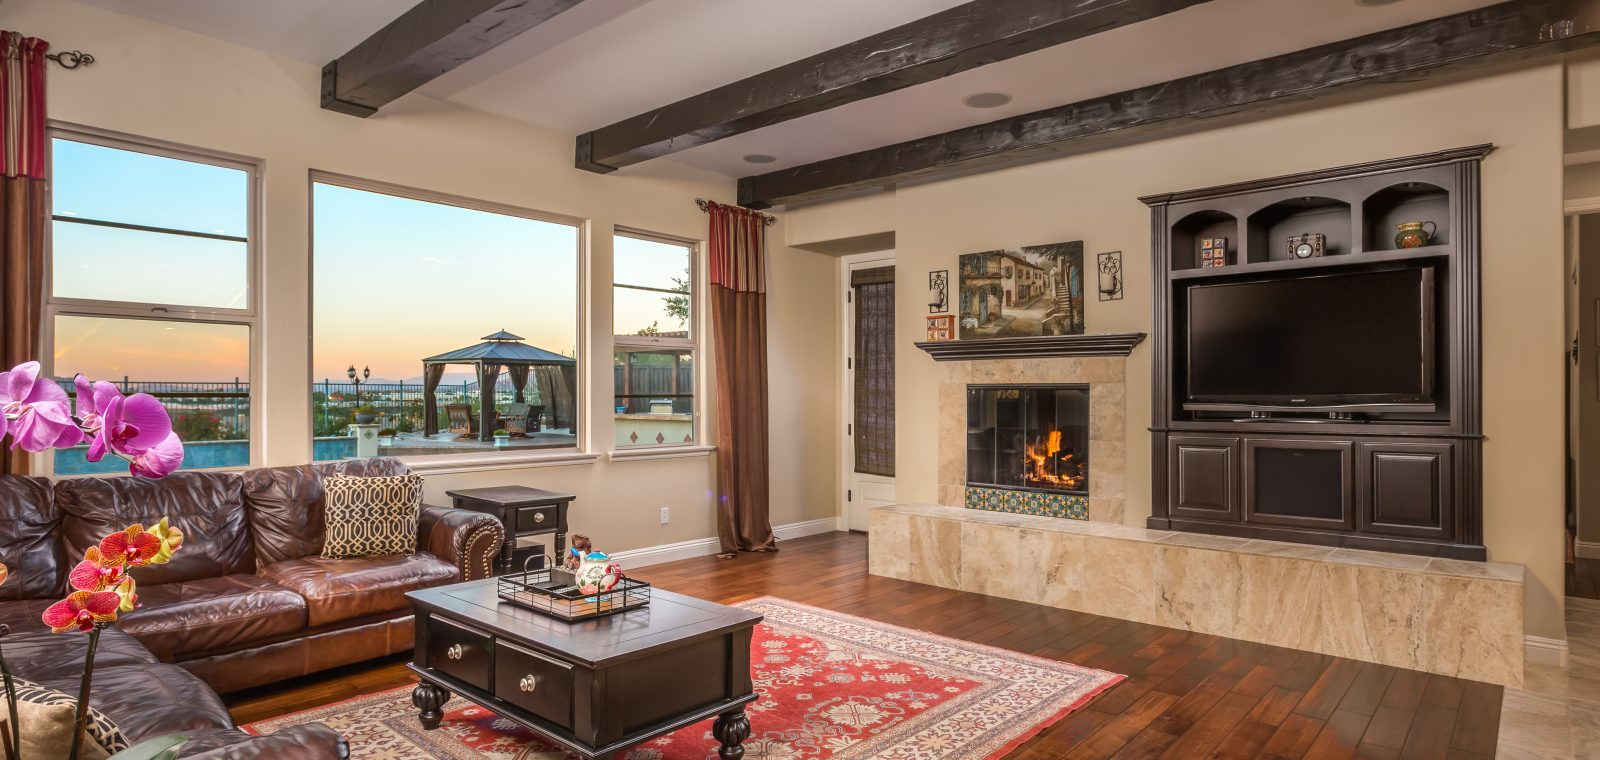 Living Room View - Blumenfeld Group | San Diego Homes for Sale